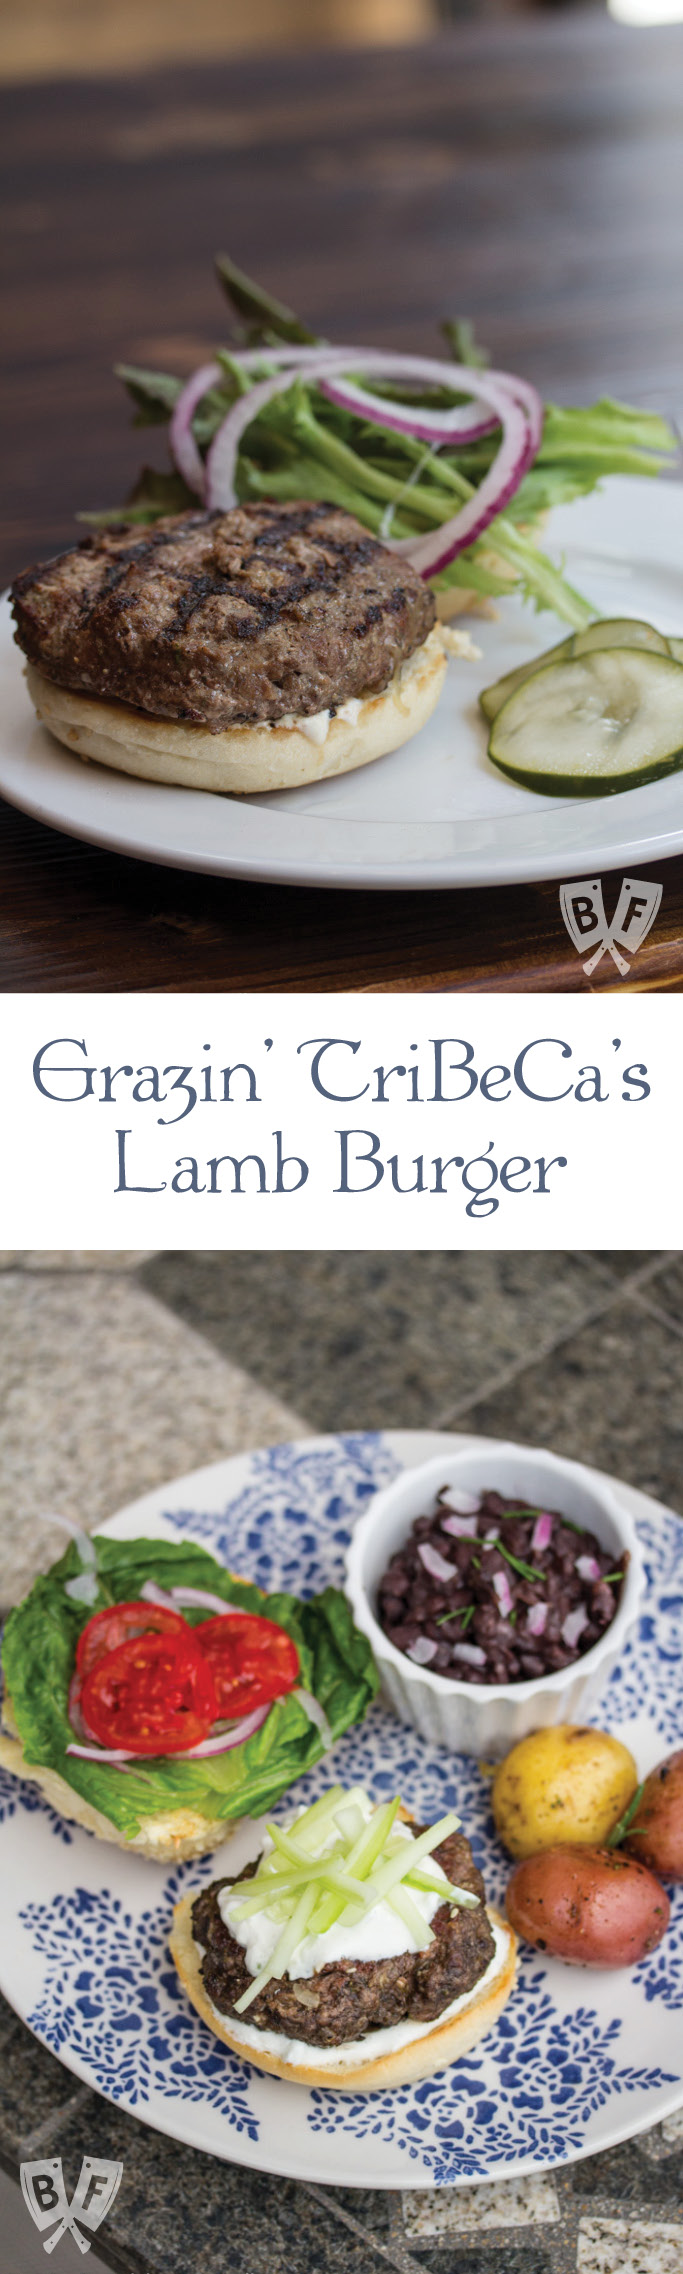 Grazin' TriBeCa's Lamb Burger: Gyro-style seasoned ground lamb is grilled and served with a rich, creamy tzatziki yogurt sauce. #BigFlavorsFromARestaurantKitchen